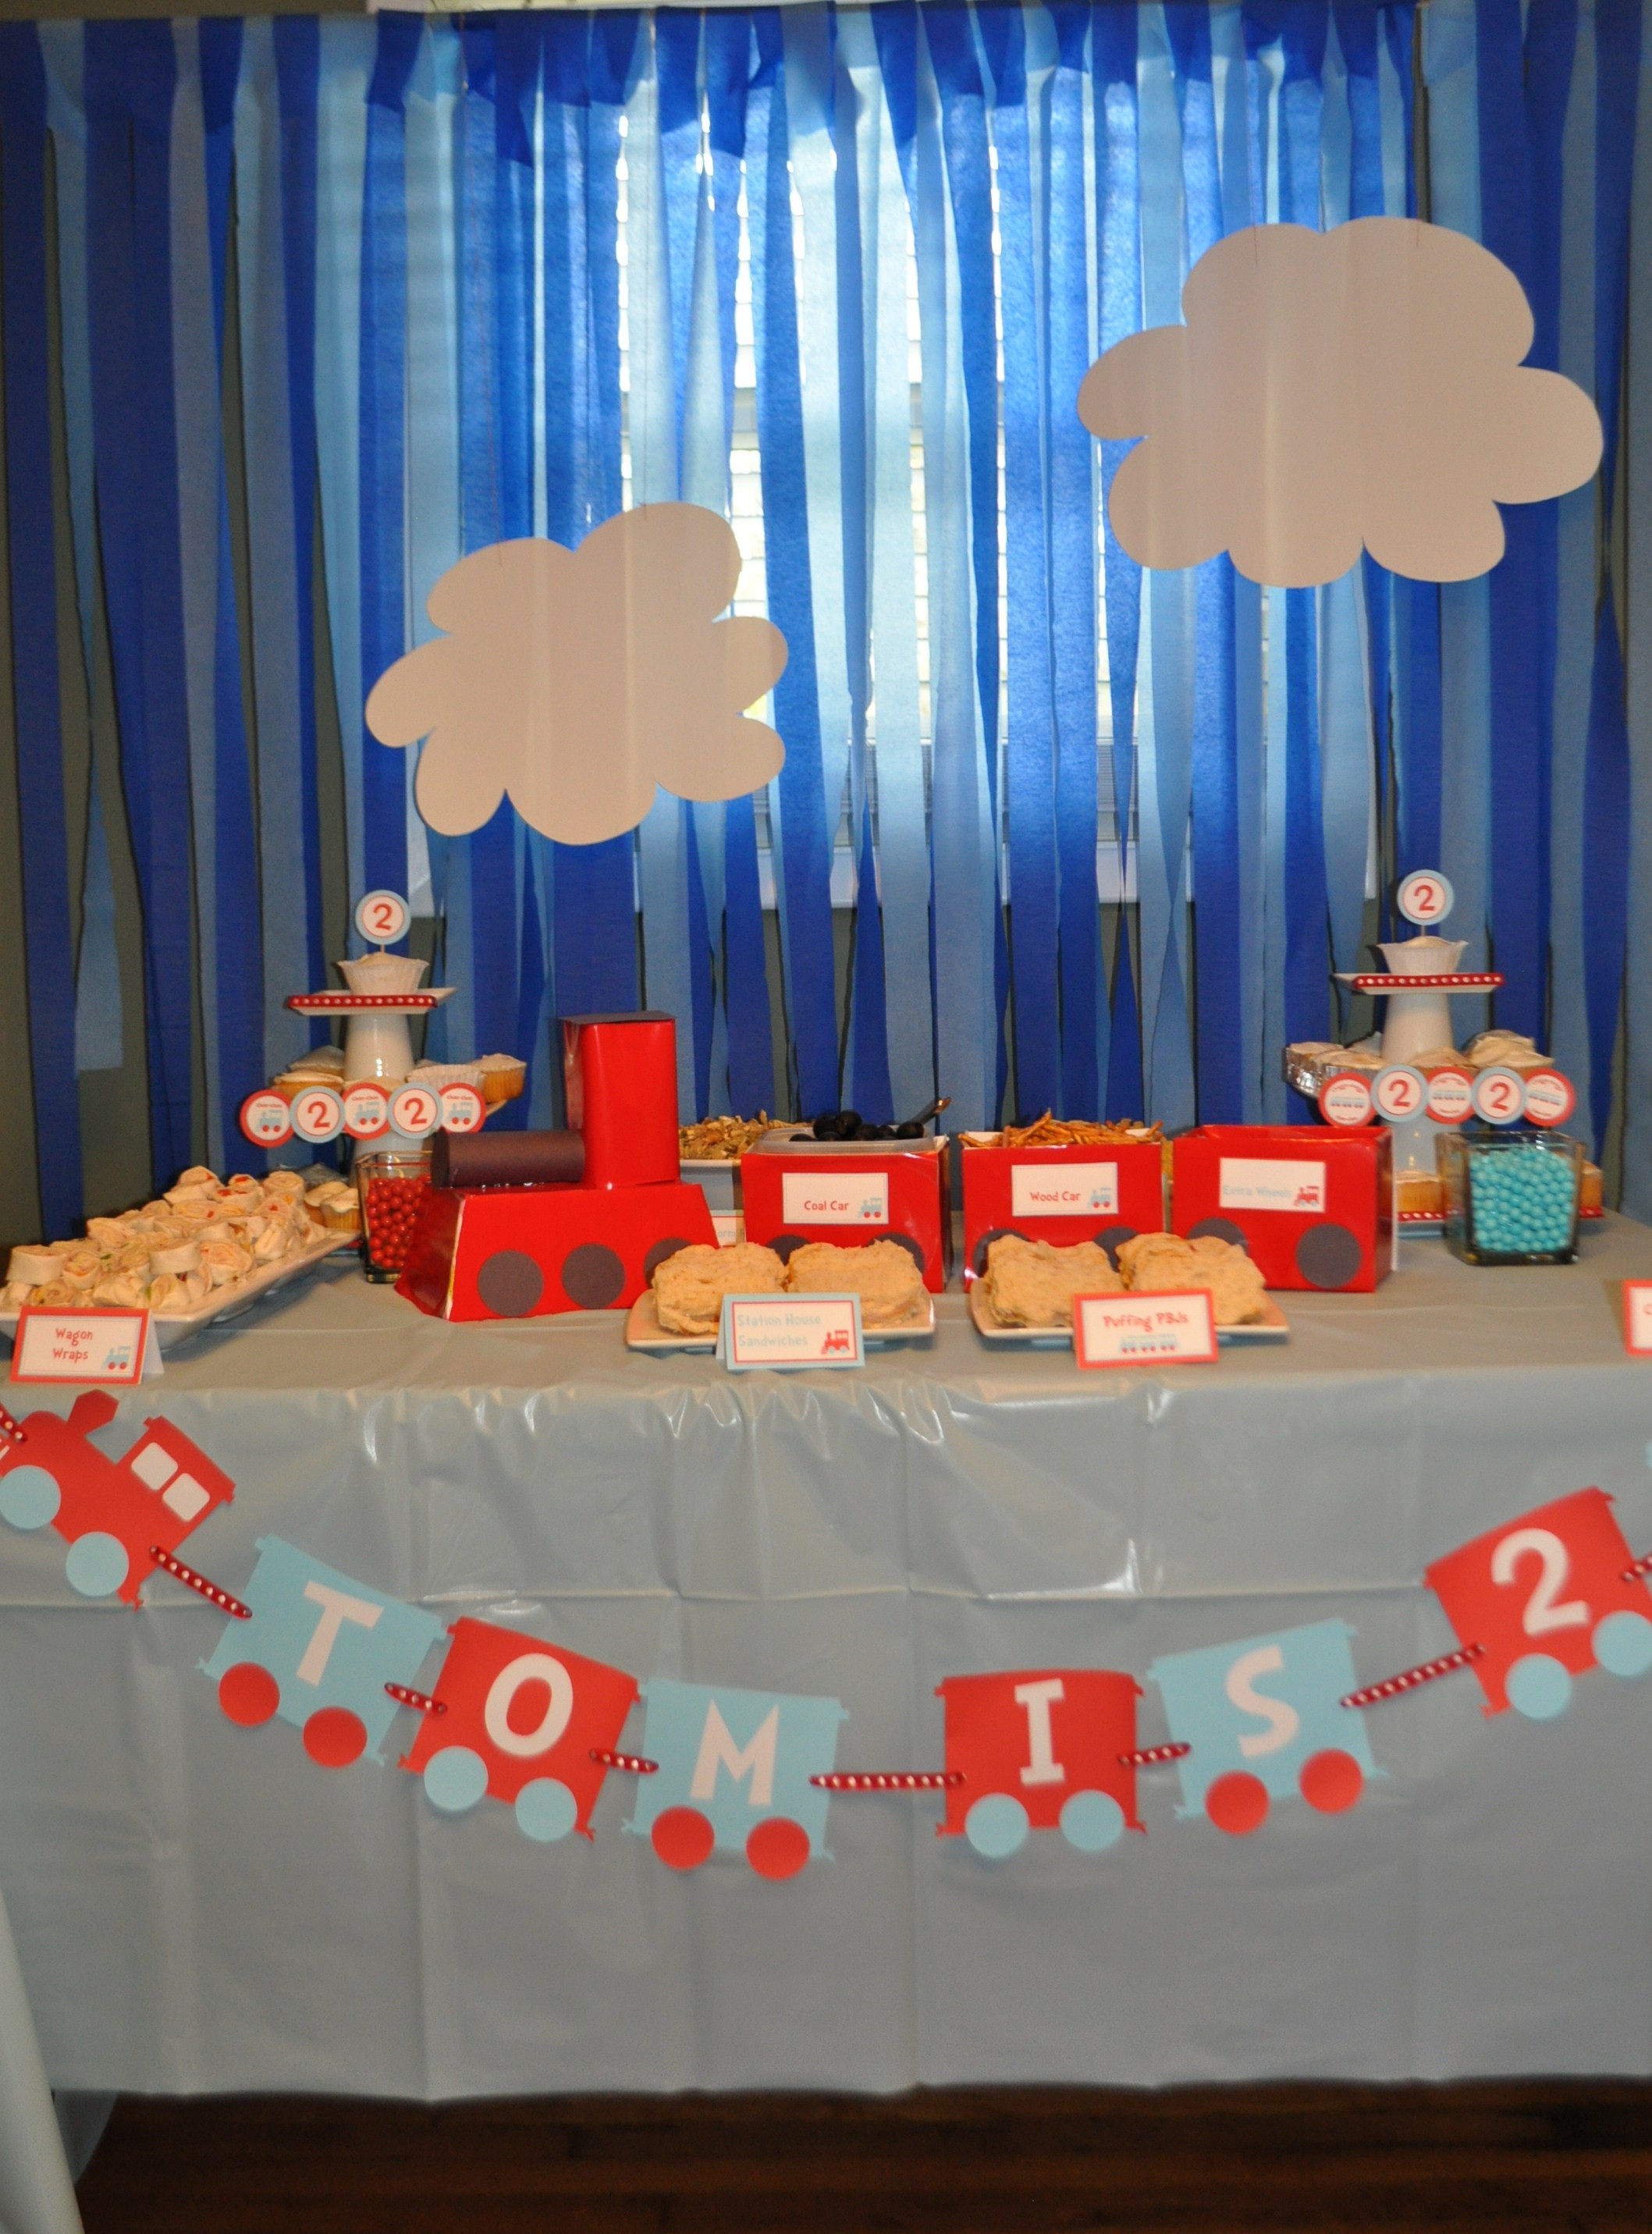 Best ideas about Train Birthday Decorations . Save or Pin The Making Tom's Train Themed 2nd Birthday Party Now.